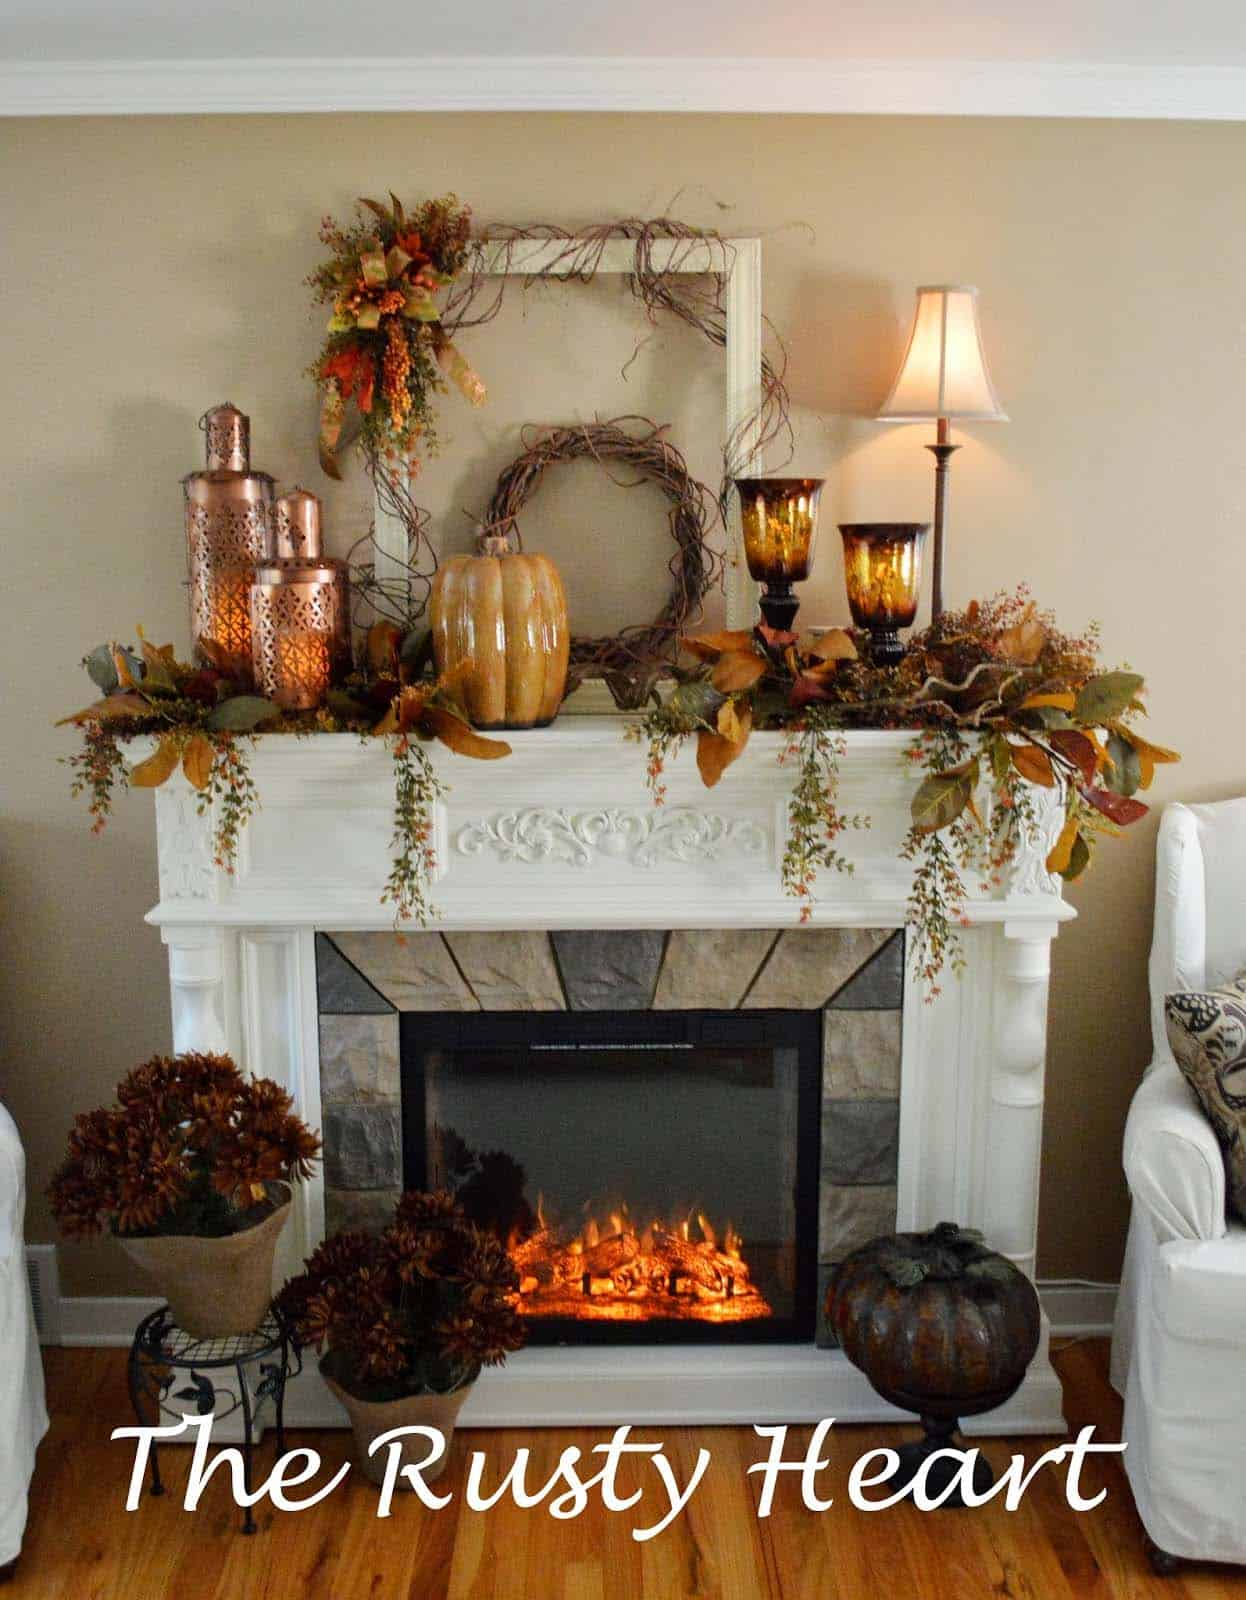 How To Decorate Fireplace 30 Amazing Fall Decorating Ideas For Your Fireplace Mantel